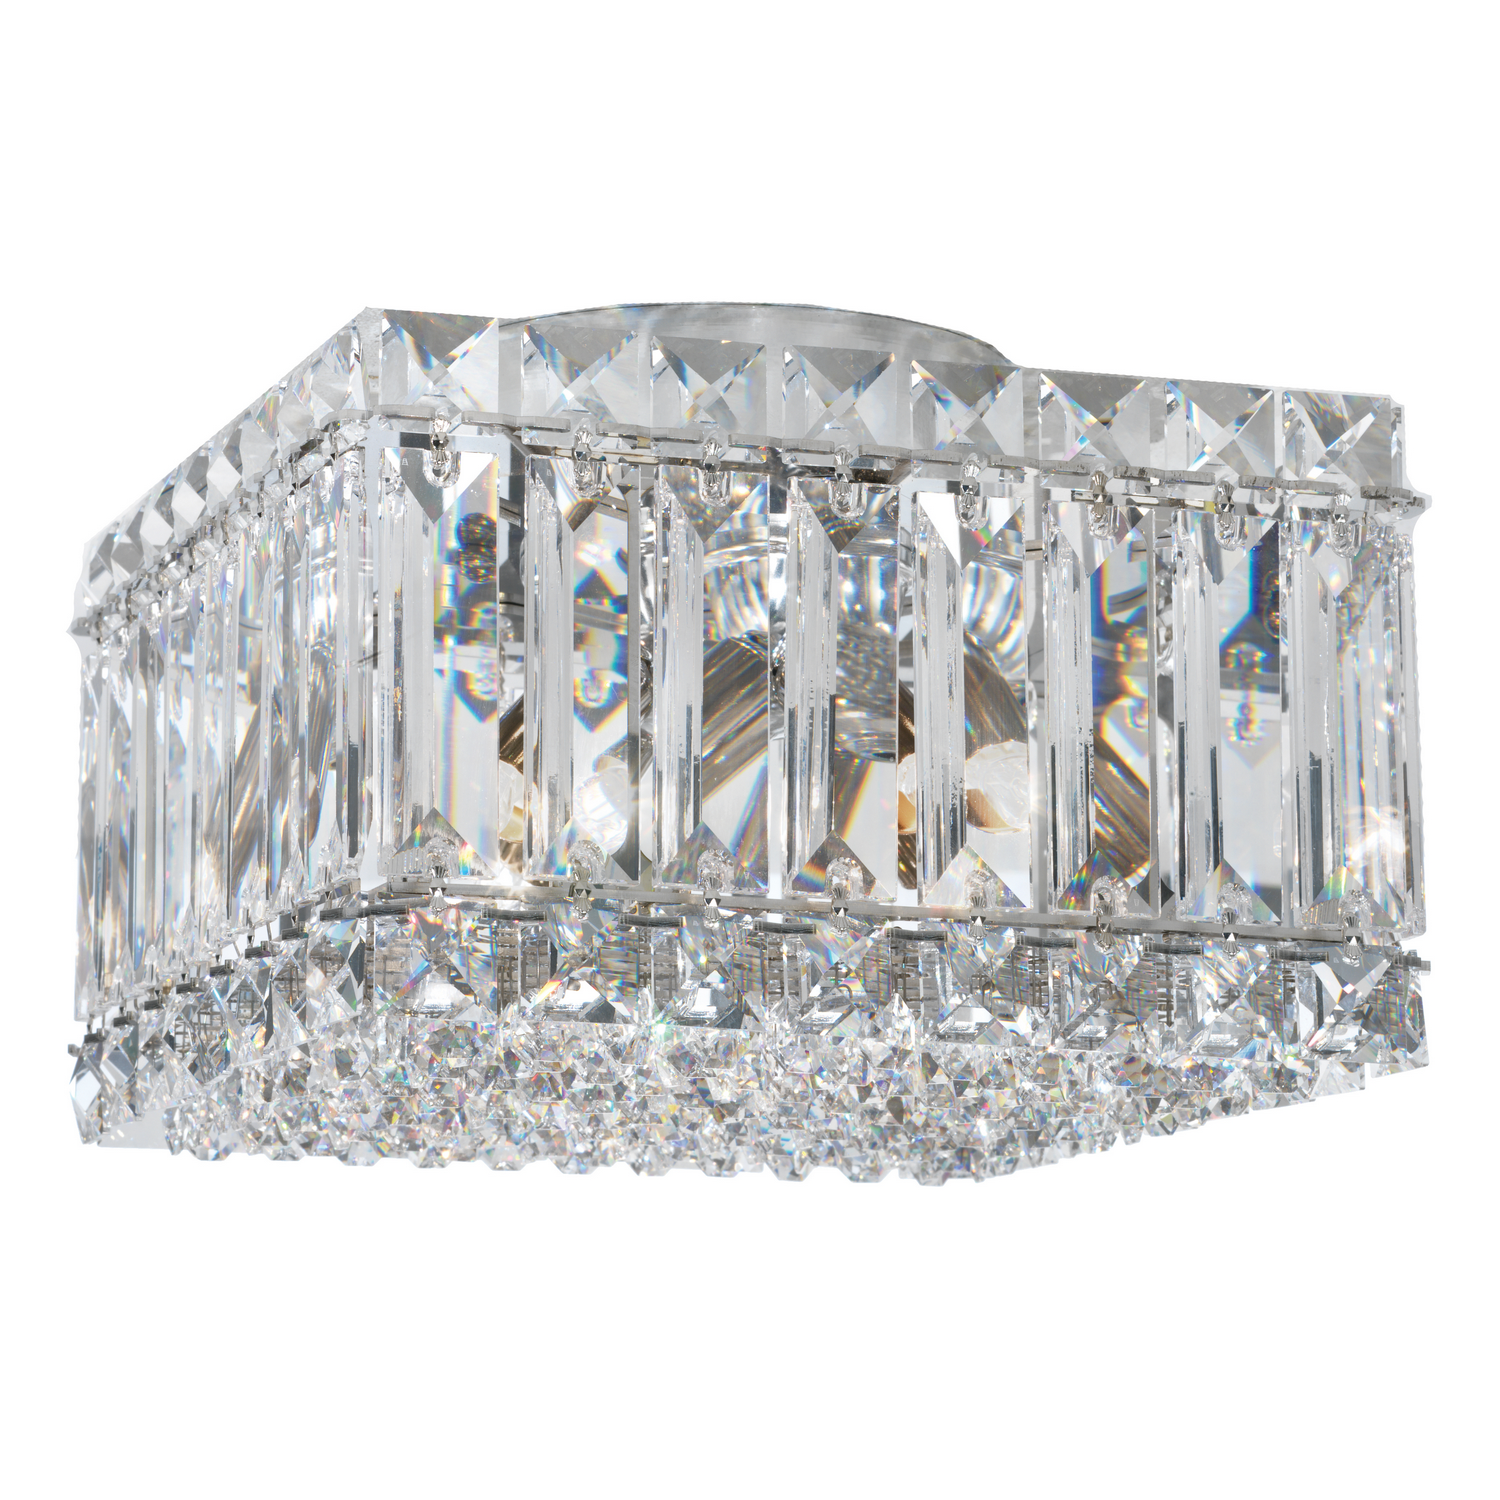 Top Rated Local® Lighting & Home Decor